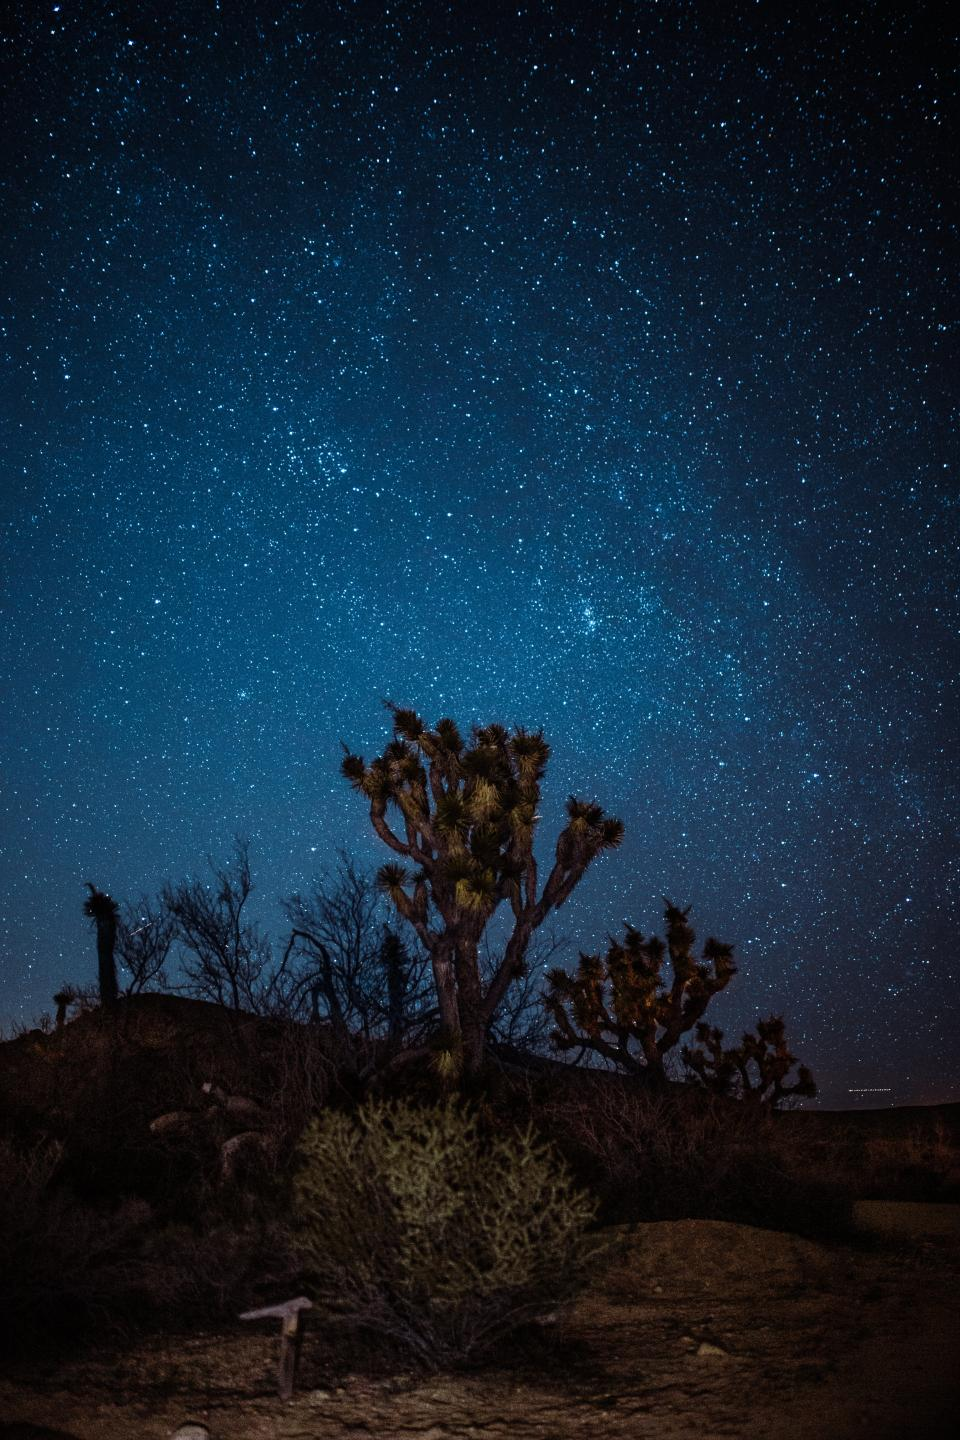 blue sky night stars plants cactus outdoor highland landscape nature